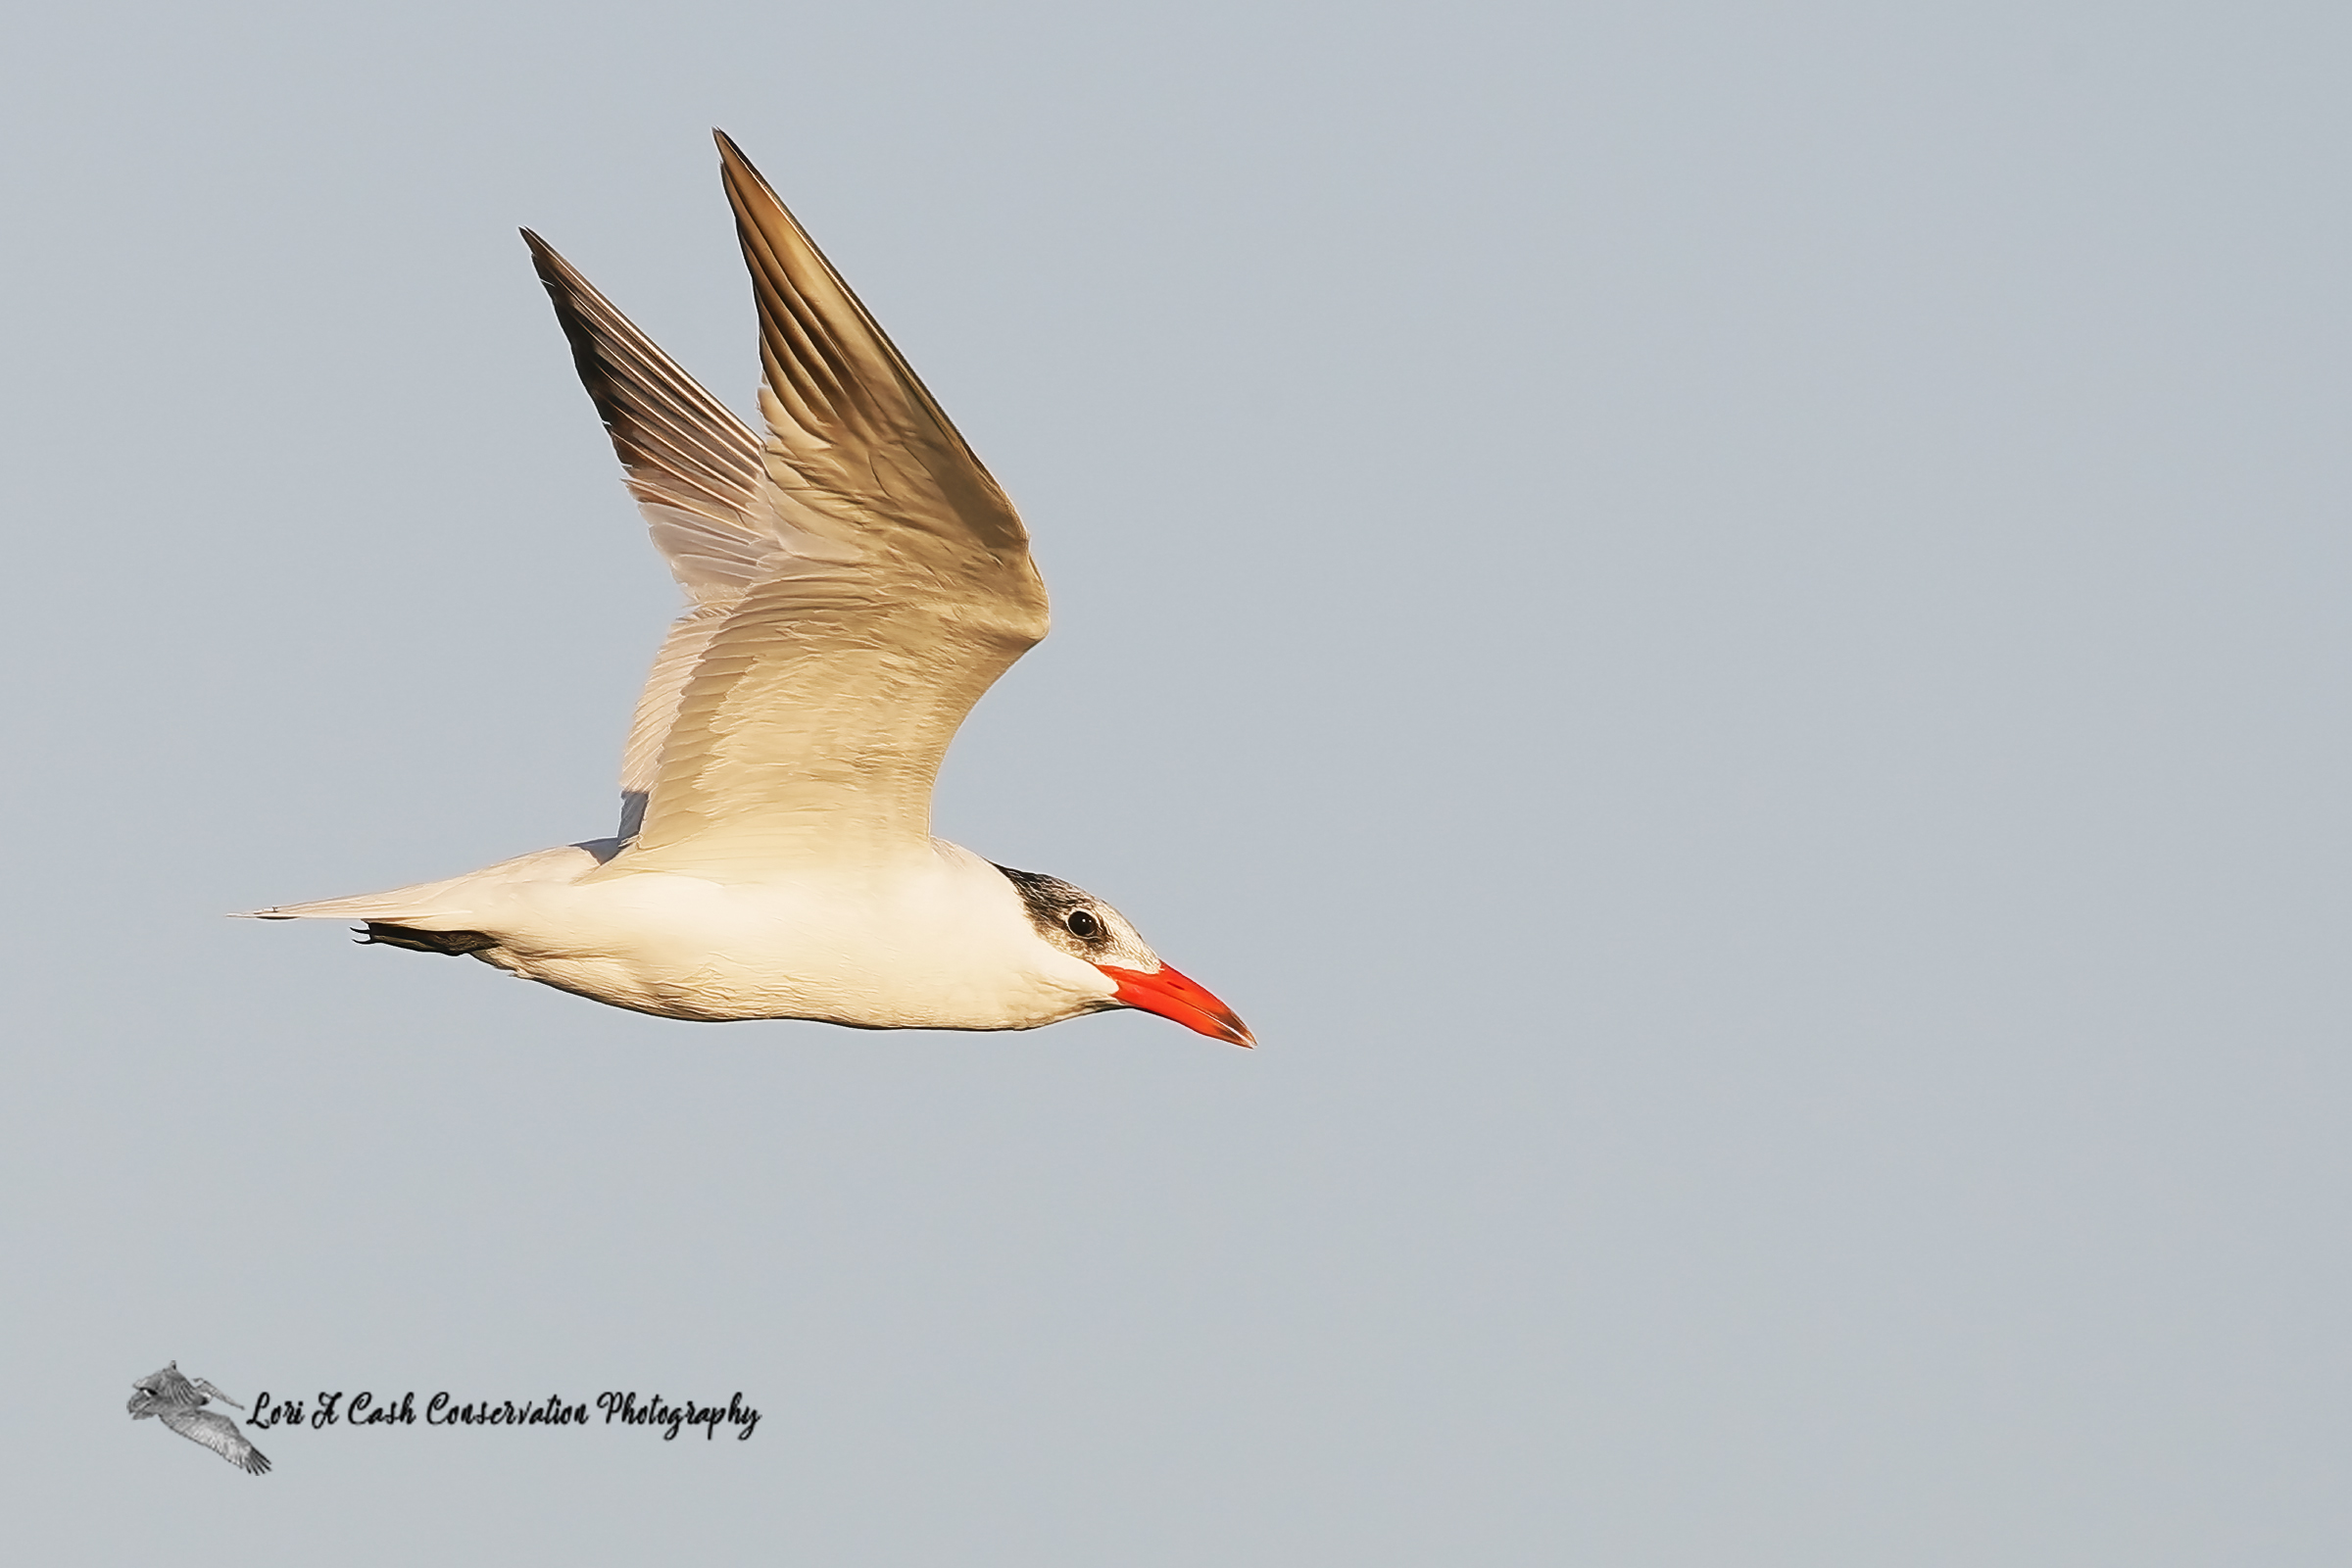 Caspian tern in winter plumage flying in the sky over Pea Island National Wildlife Refuge on the Outer Banks of North Carolina.